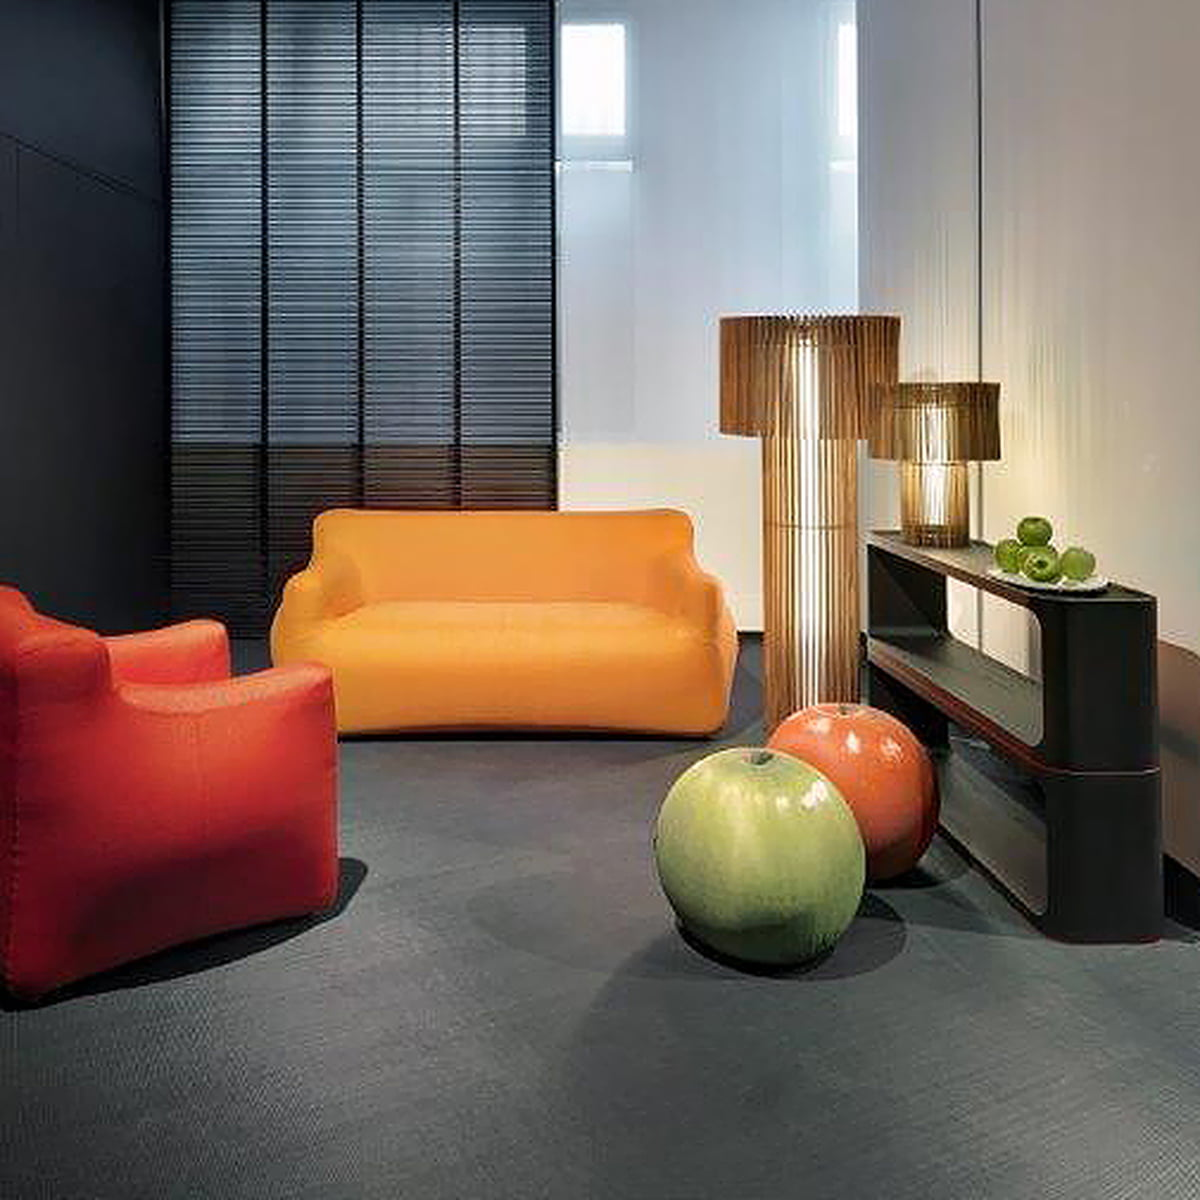 Baleri Italia - Tatino Eva seating ball (green apple) & Tatino by Baleri Italia in our interior design shop